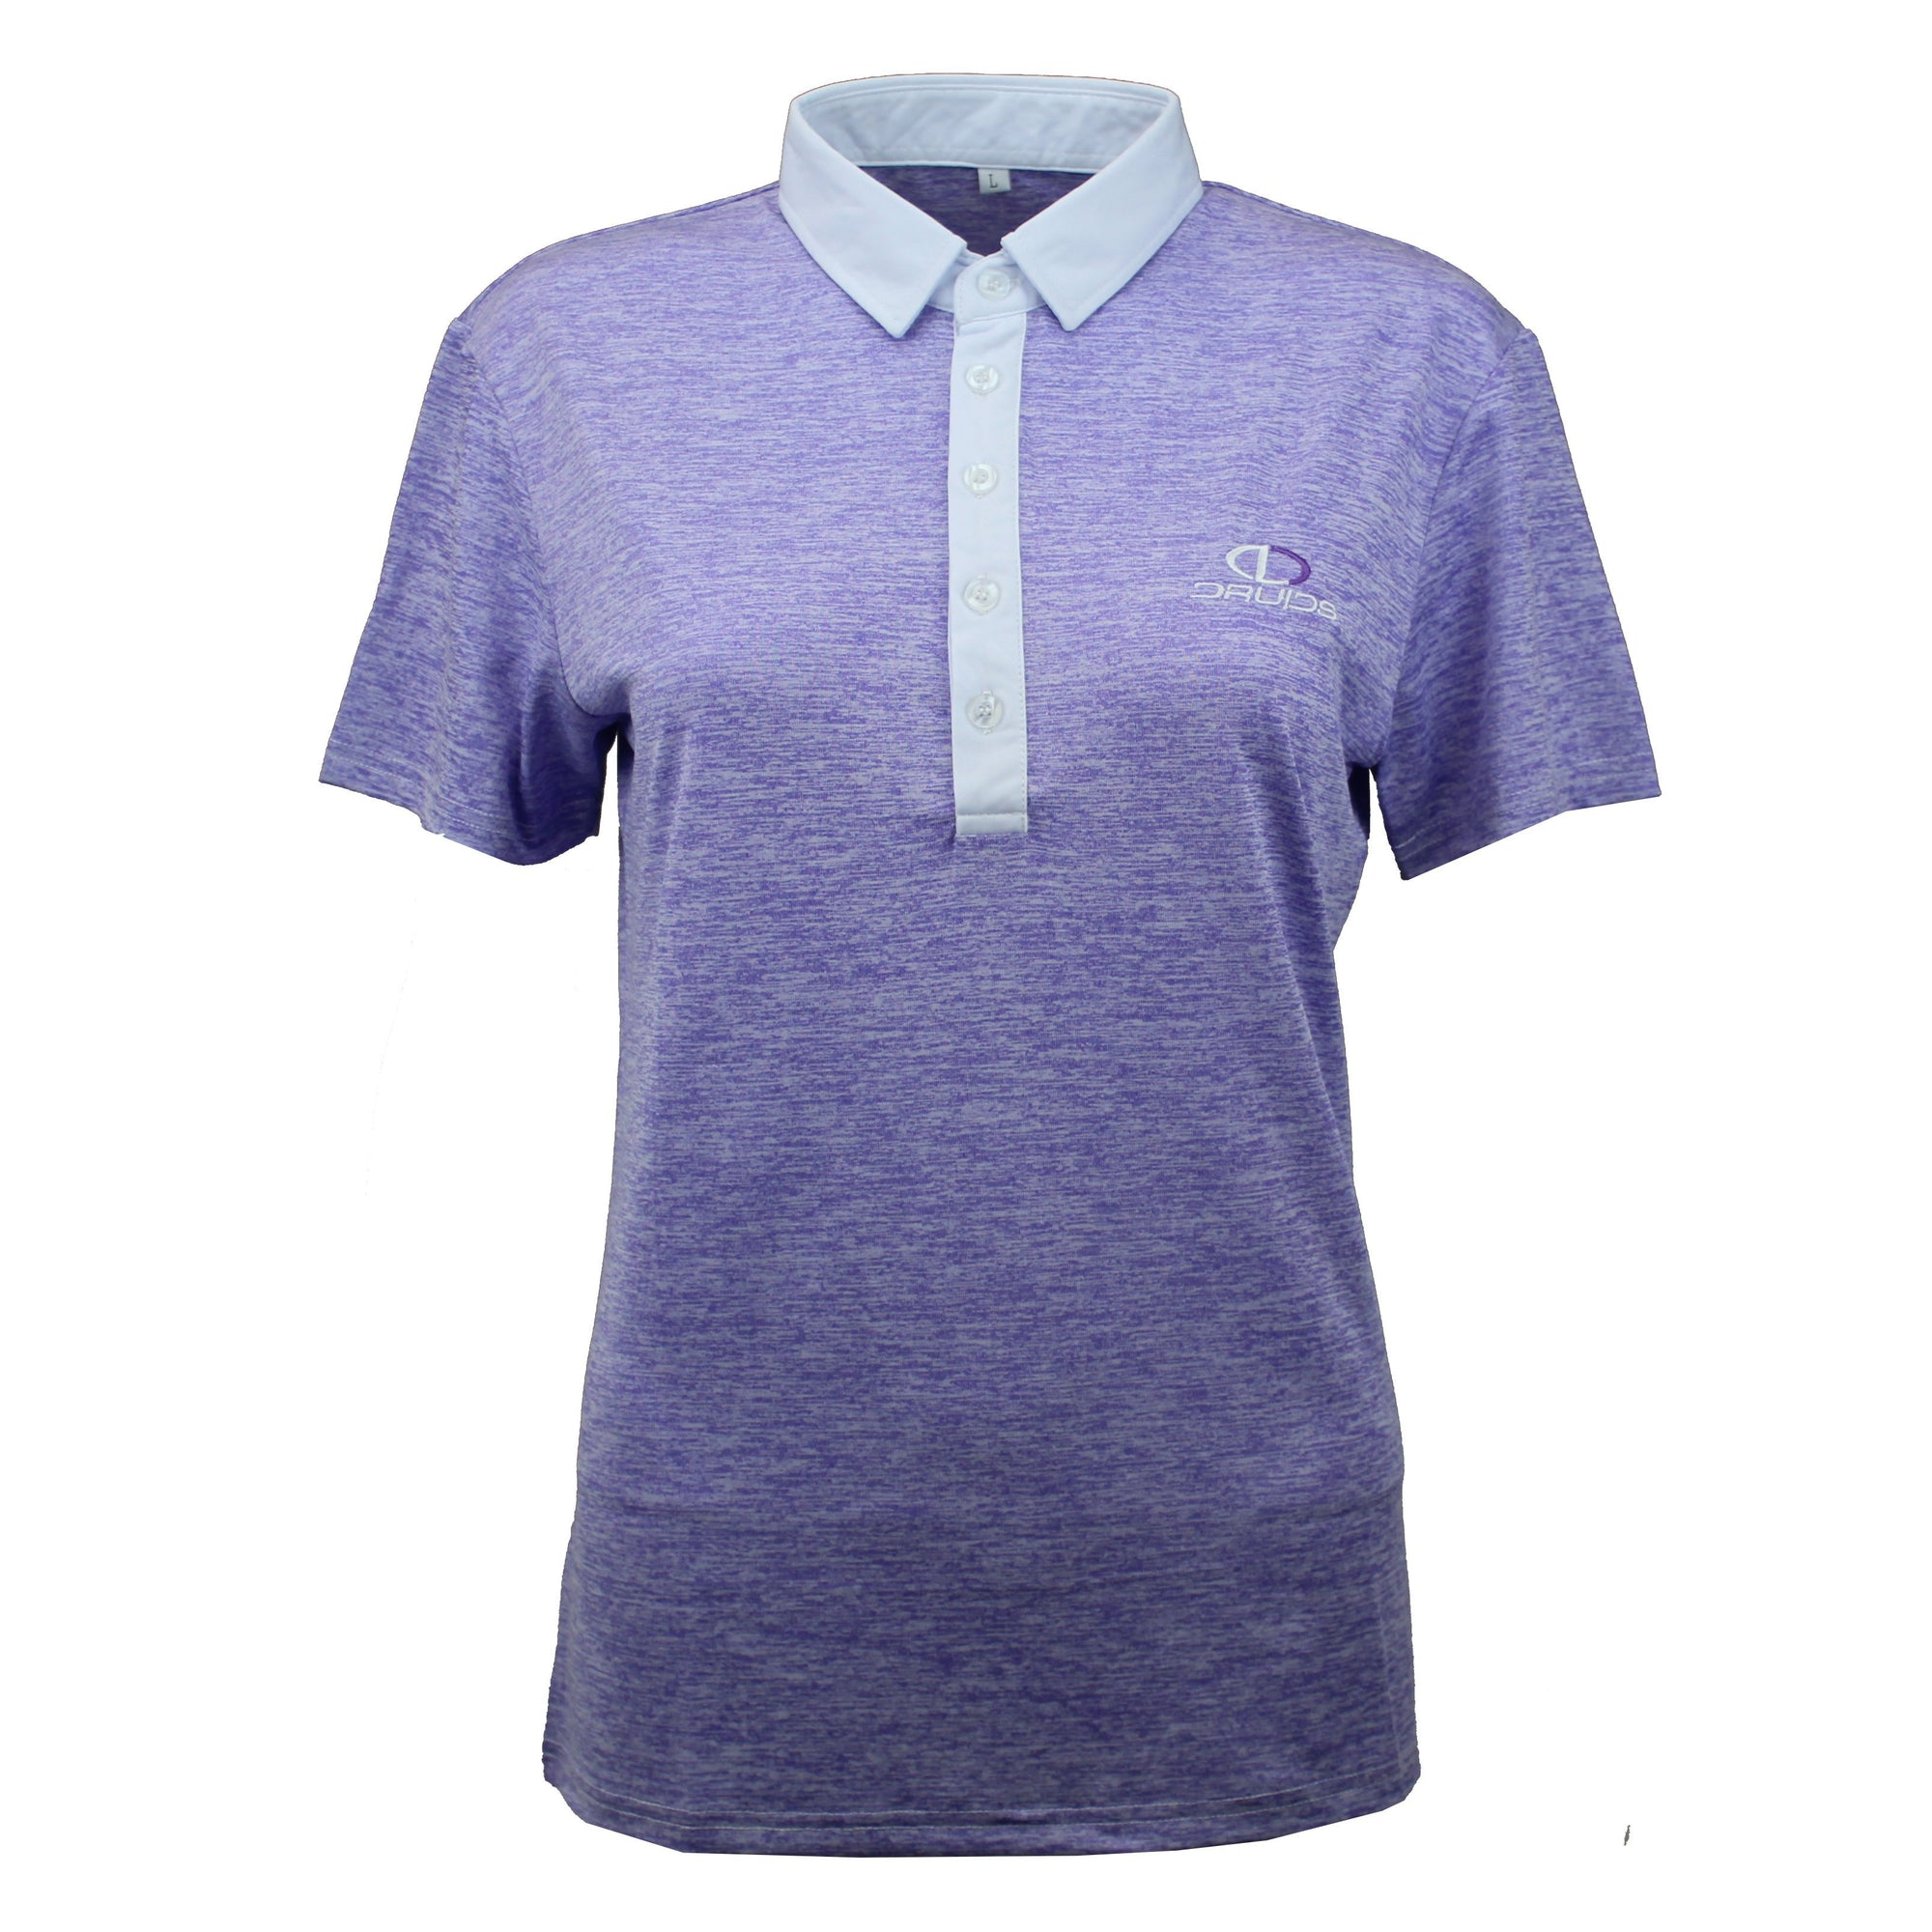 Druids Golf - Ladies Speckled Polo 2018 (Purple)